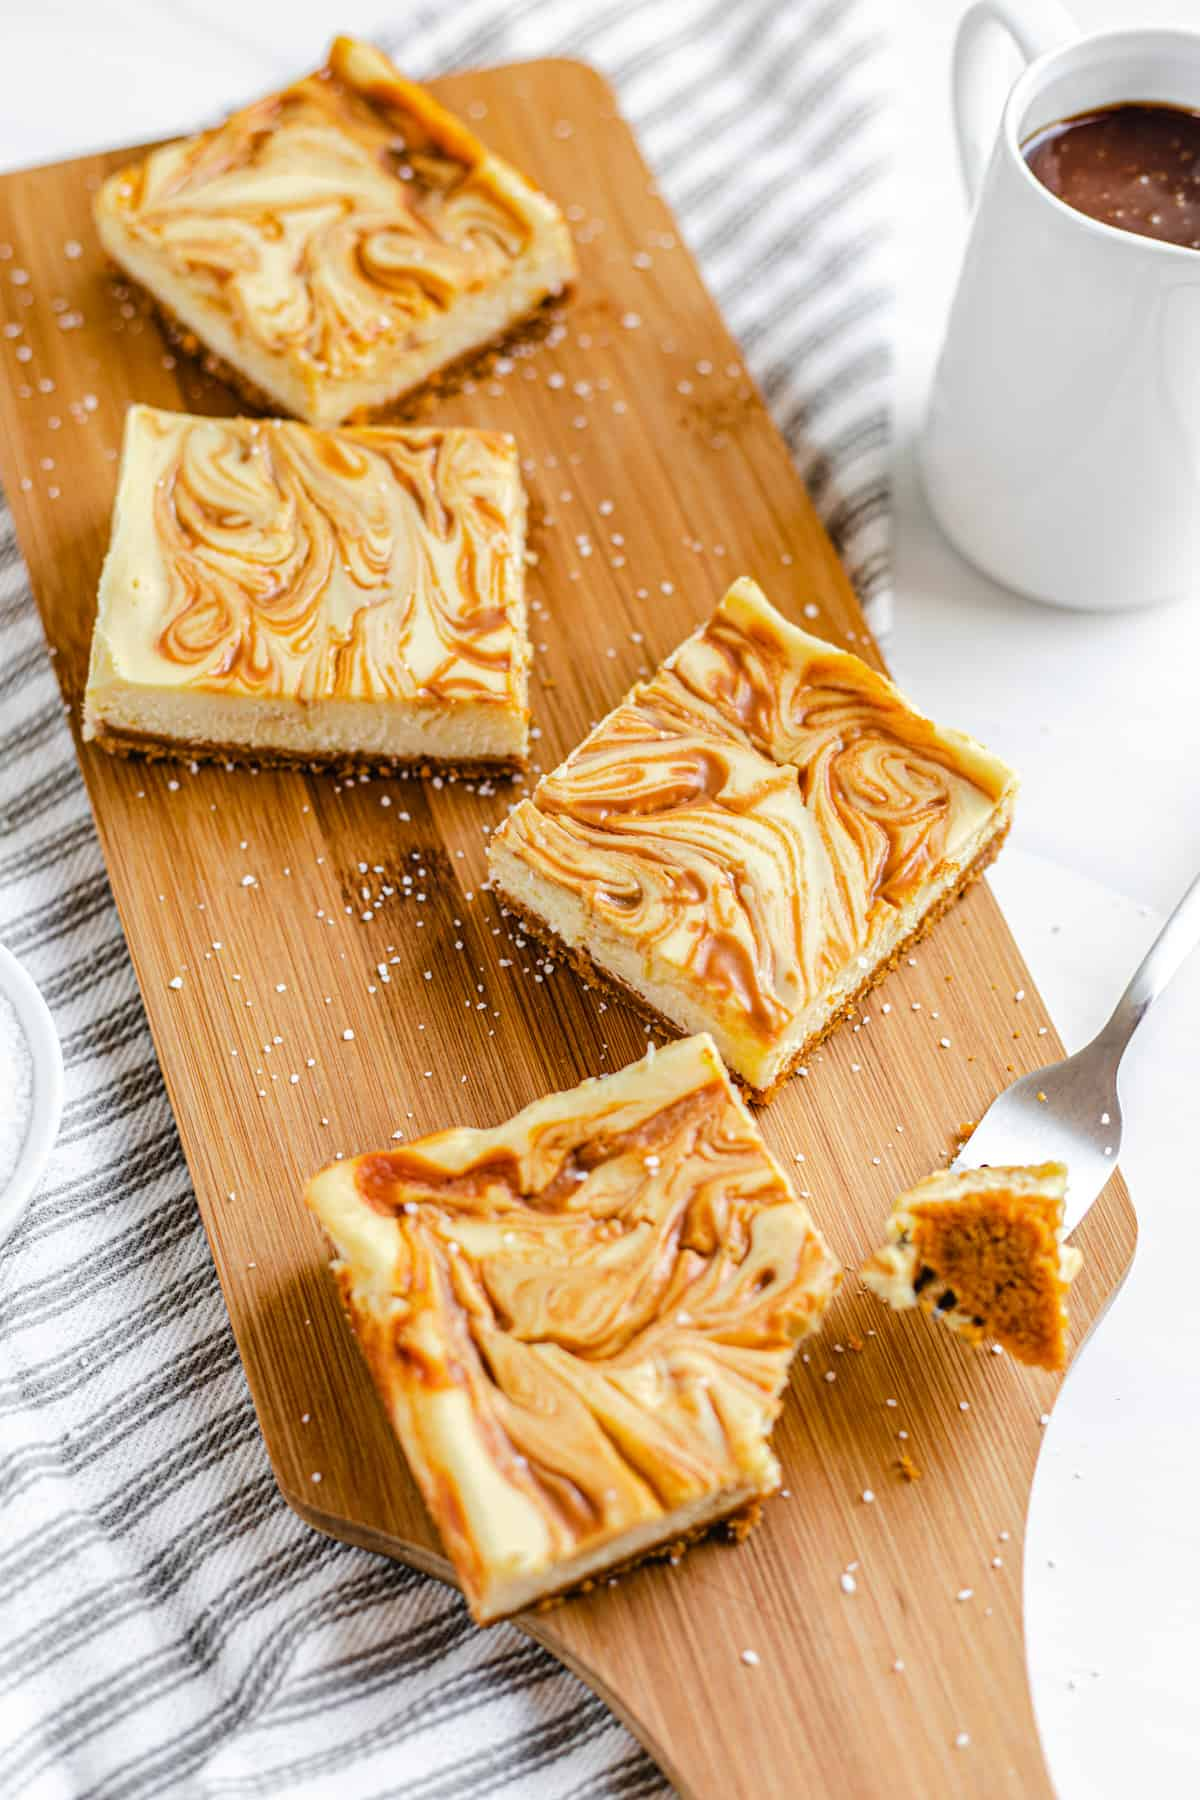 cheesecake bars on a wooden board with pitcher of caramel next to it and bite taken out of the front bar